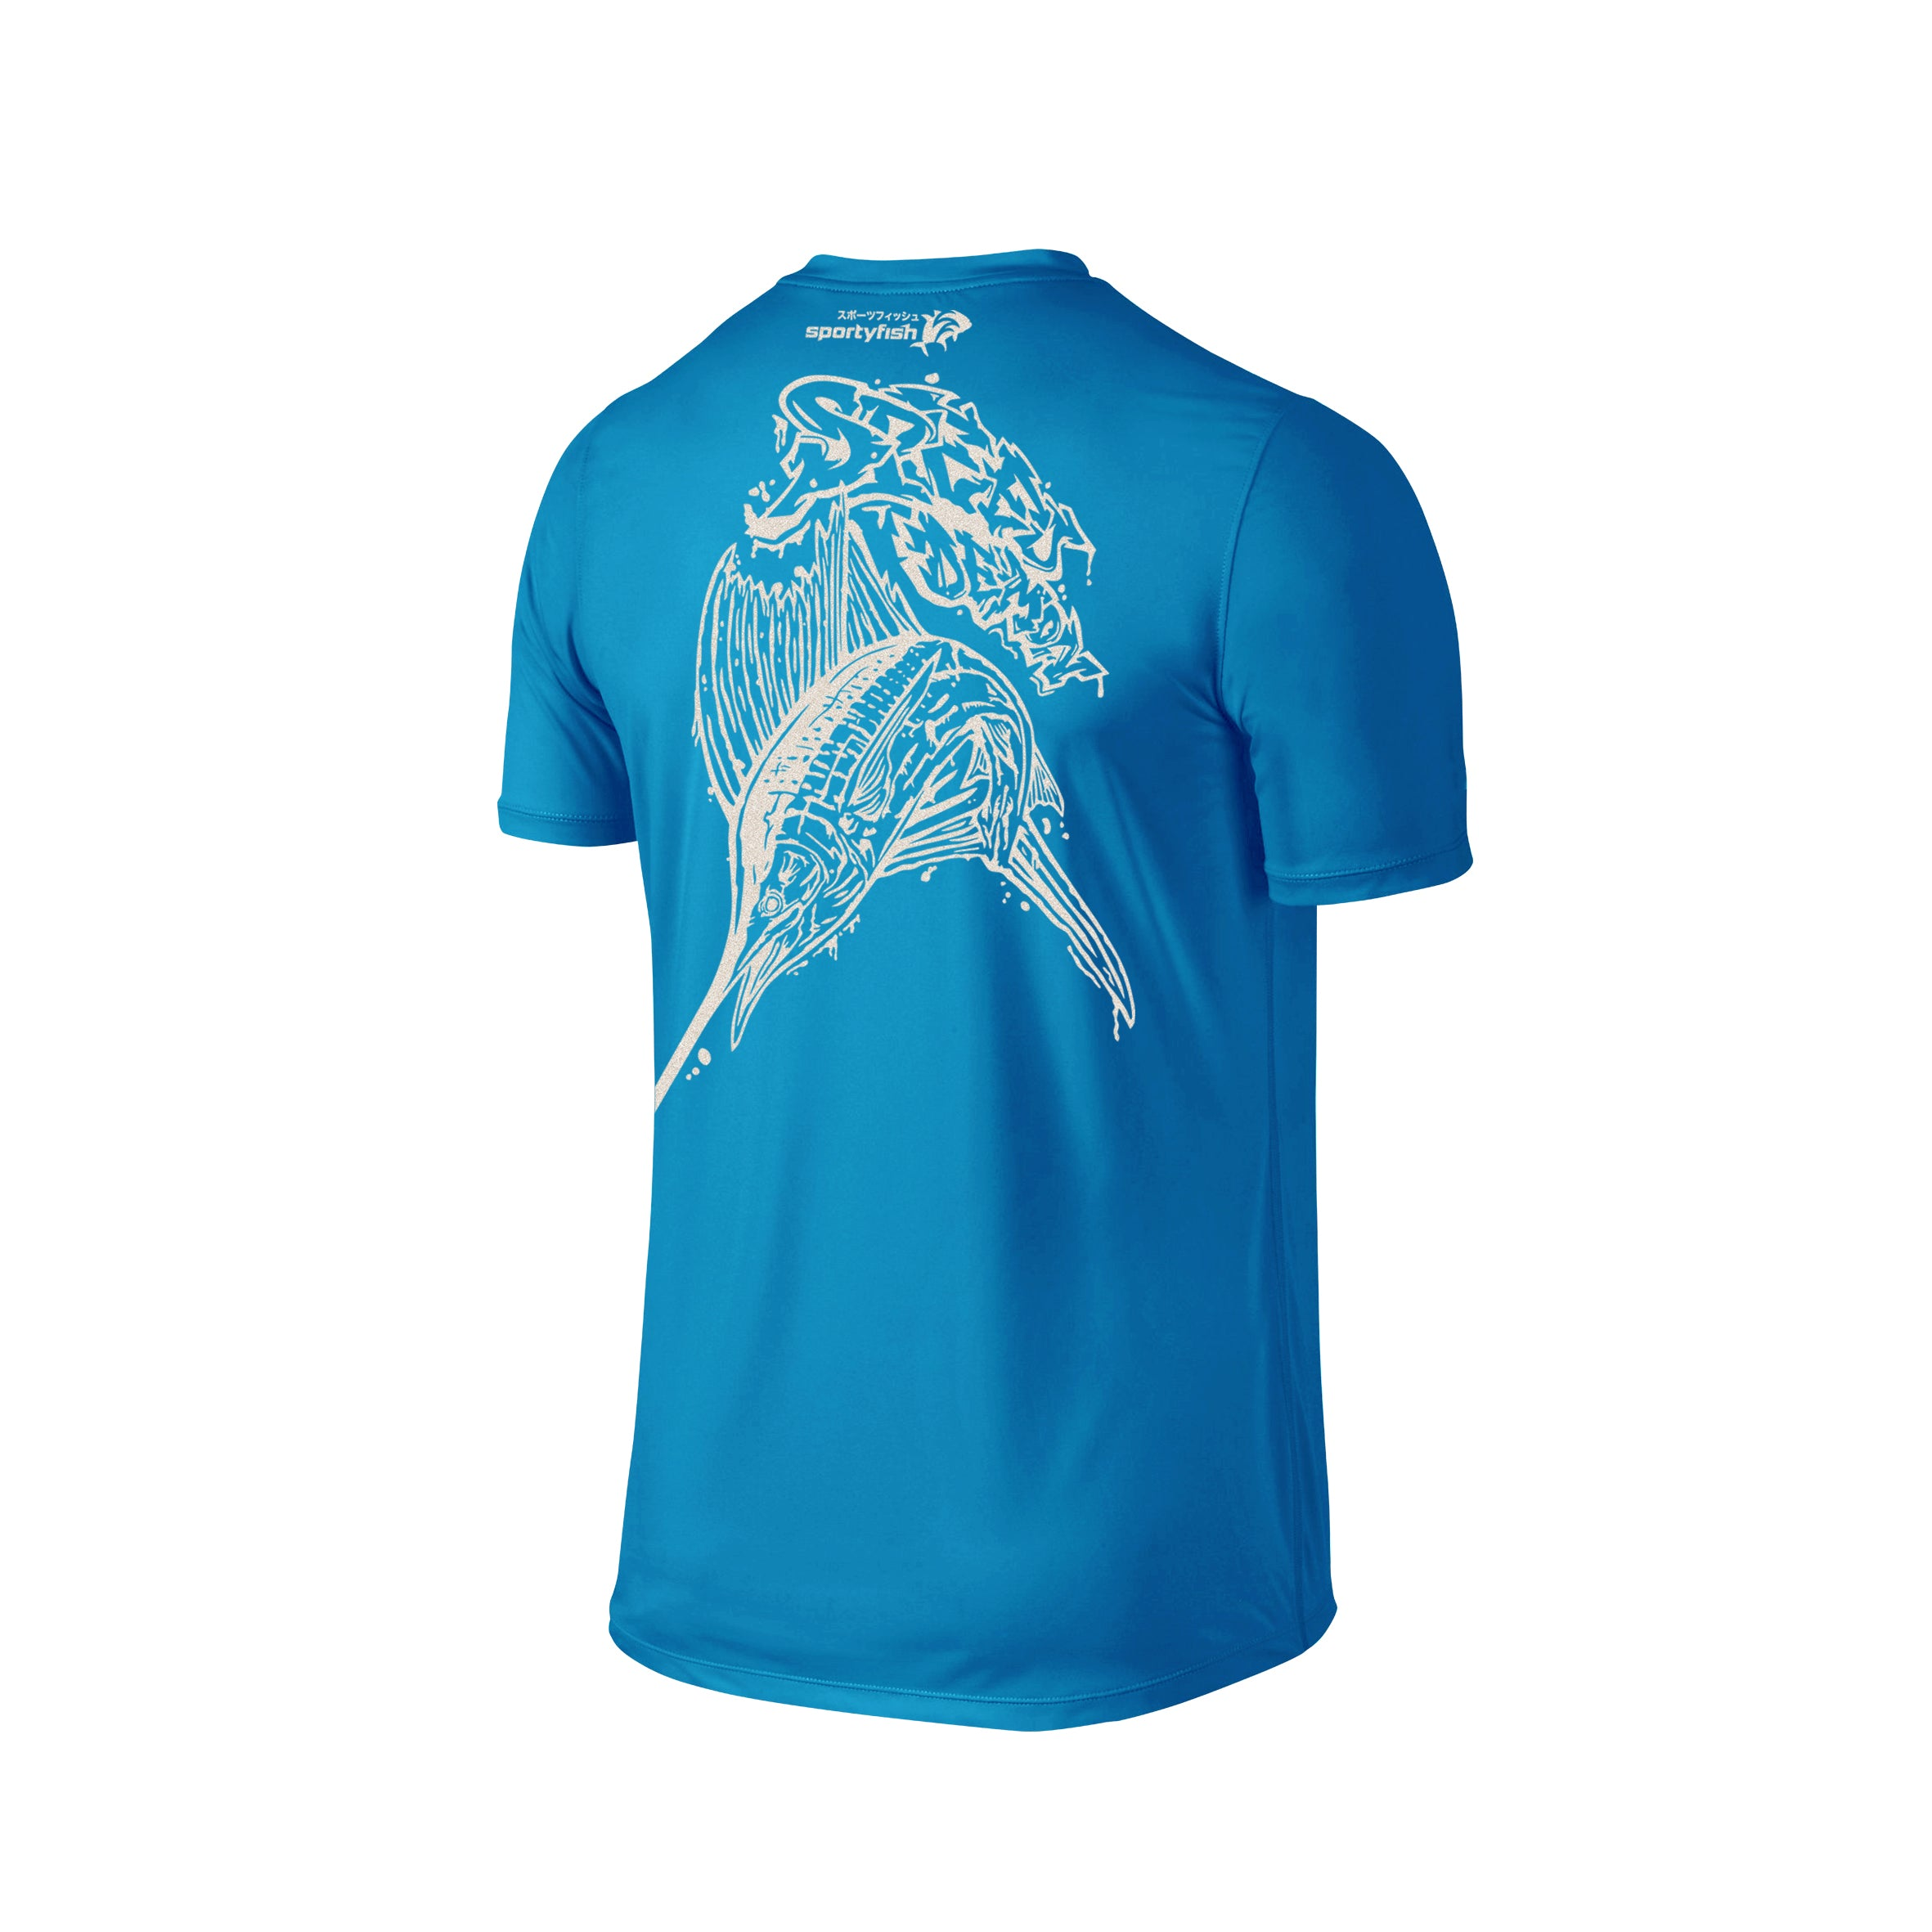 Wildstyle Graffiti Series Turquoise T-shirt(back view)Pearl White: Atlantic Sailfish